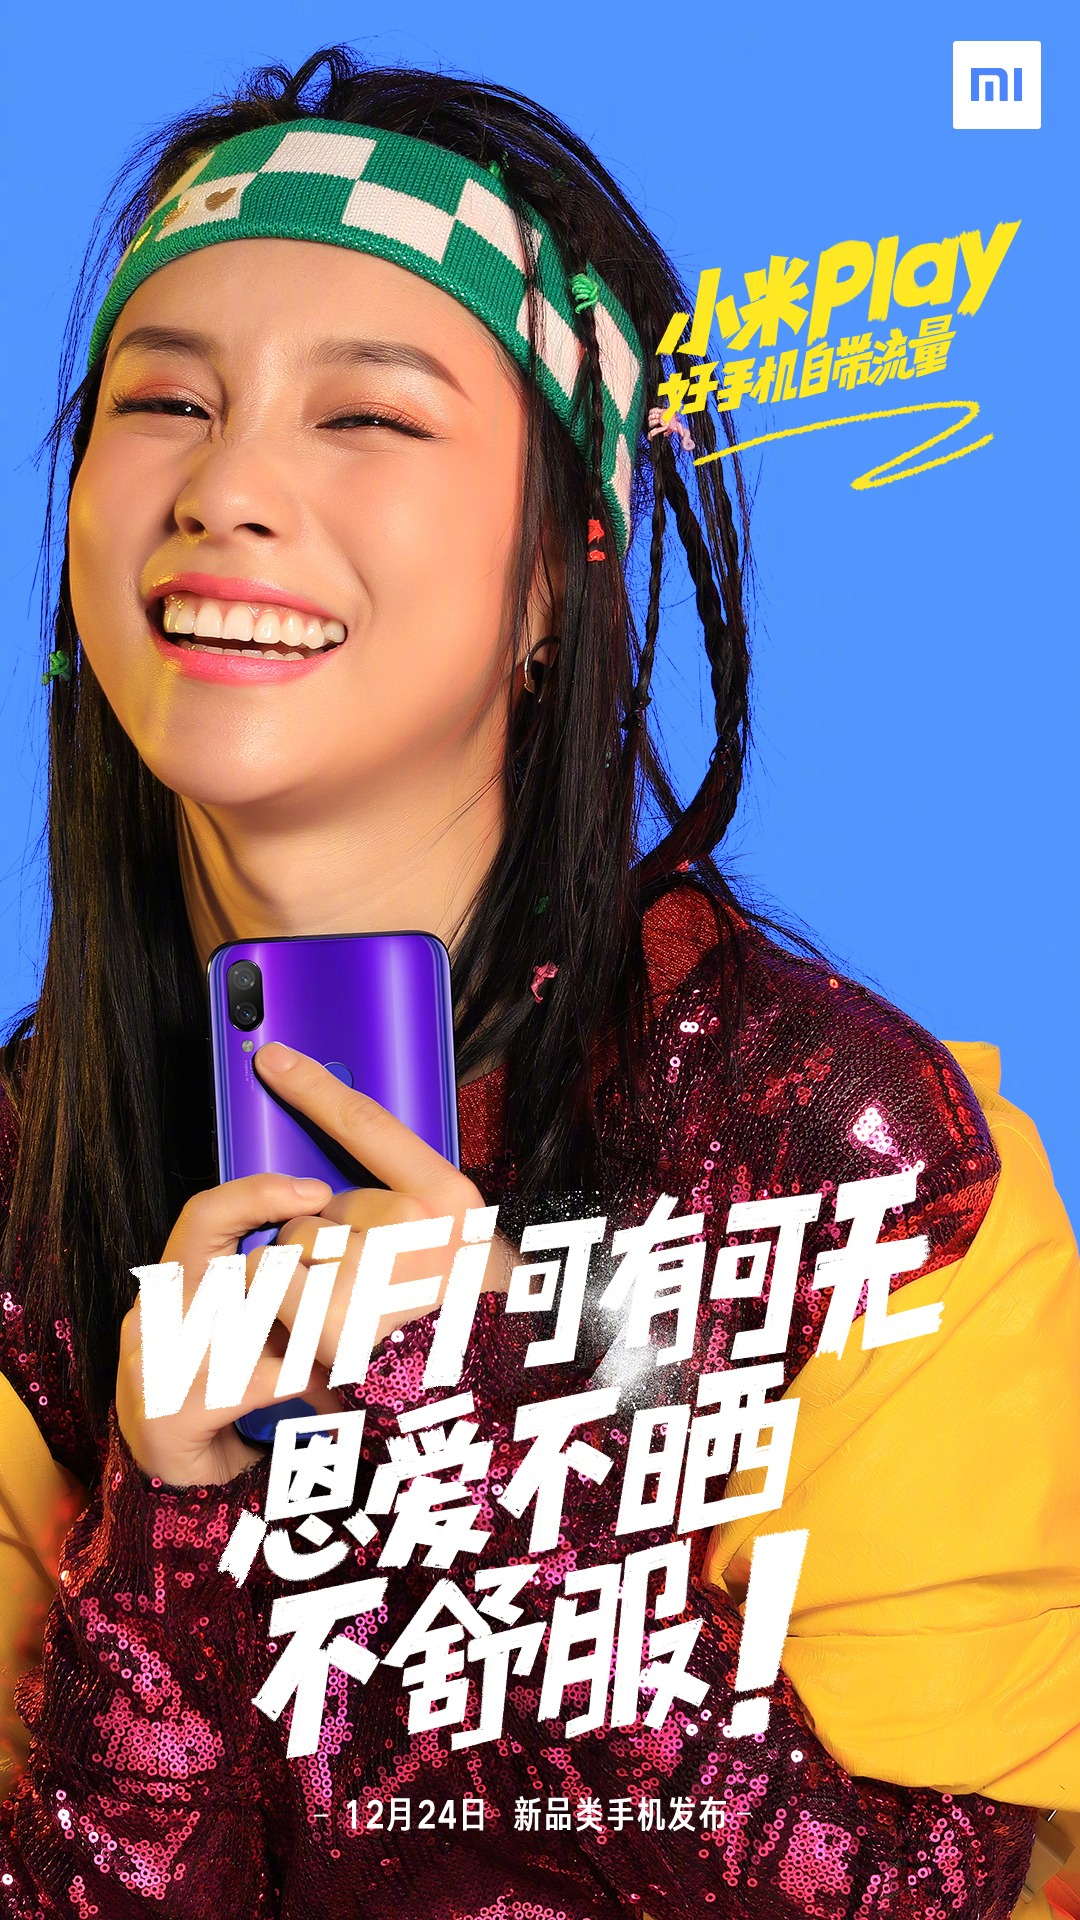 Xiaomi Mi Play with Waterdrop notch set to launch on December 24 4